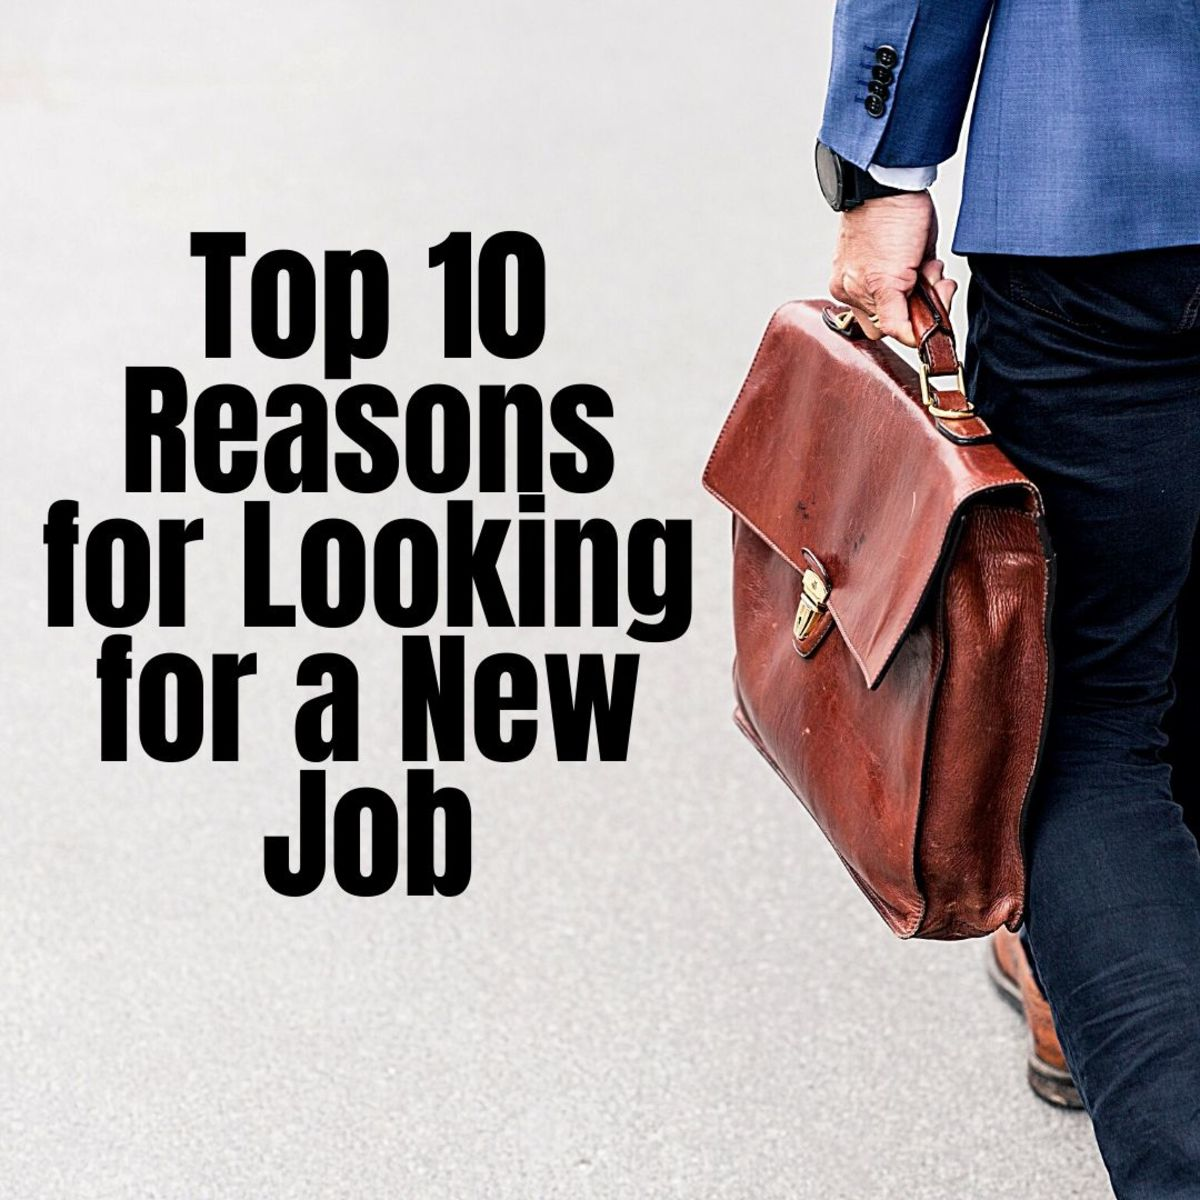 10 Reasons You're Looking for a New Job